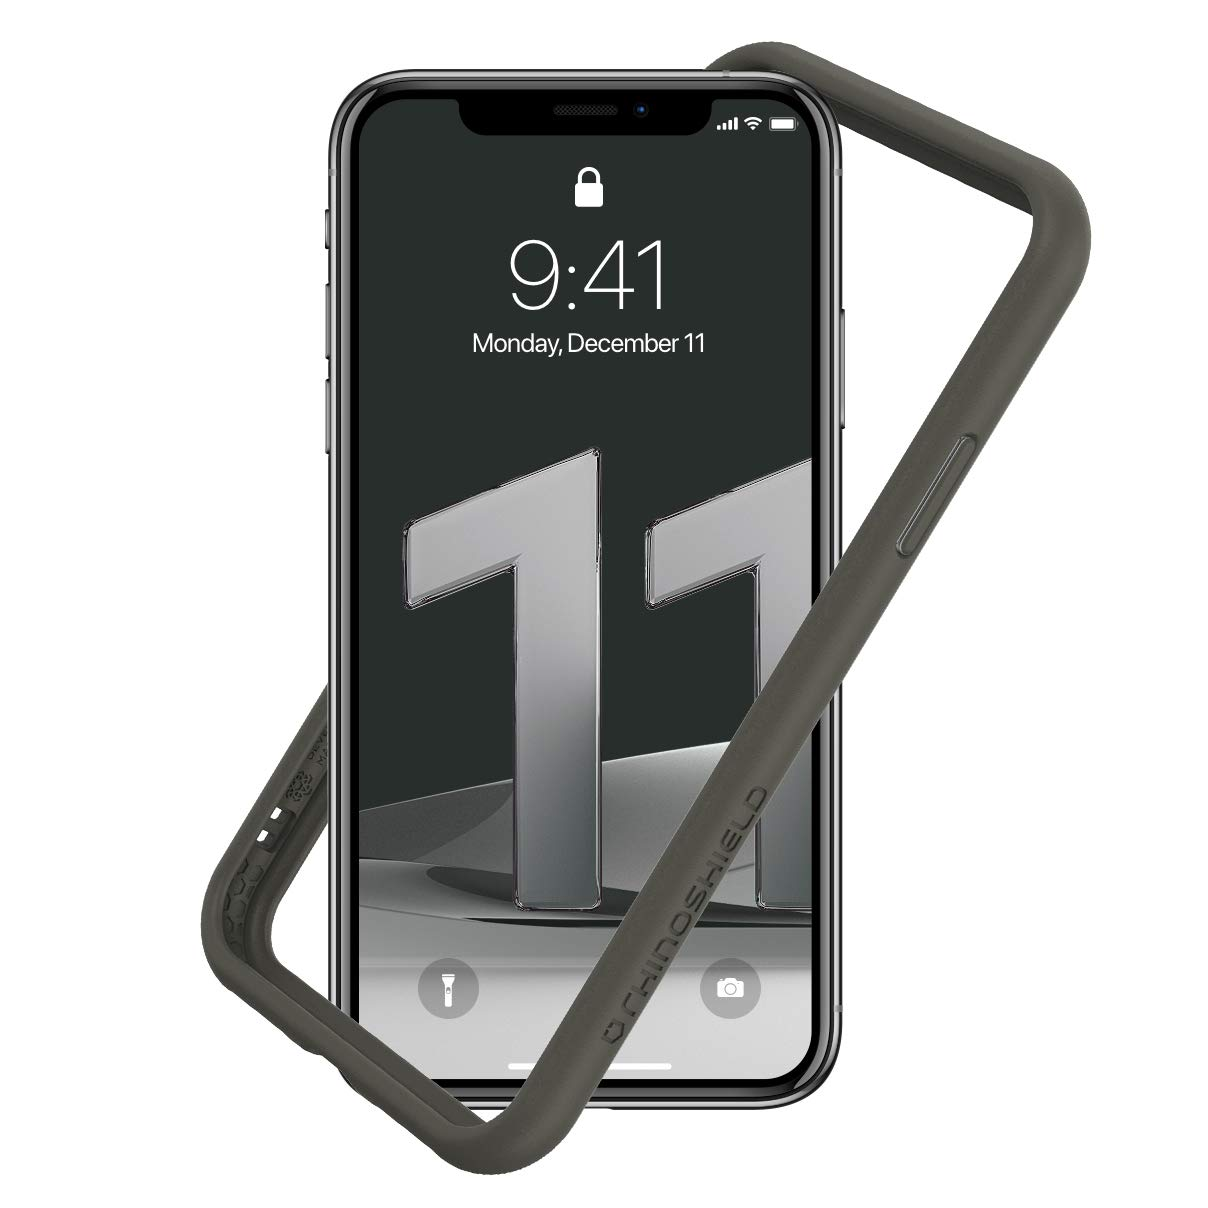 RhinoShield Bumper Case Compatible with [iPhone 11 / XR] | CrashGuard NX - Shock Absorbent Slim Design Protective Cover 3.5M / 11ft Drop Protection - Graphite